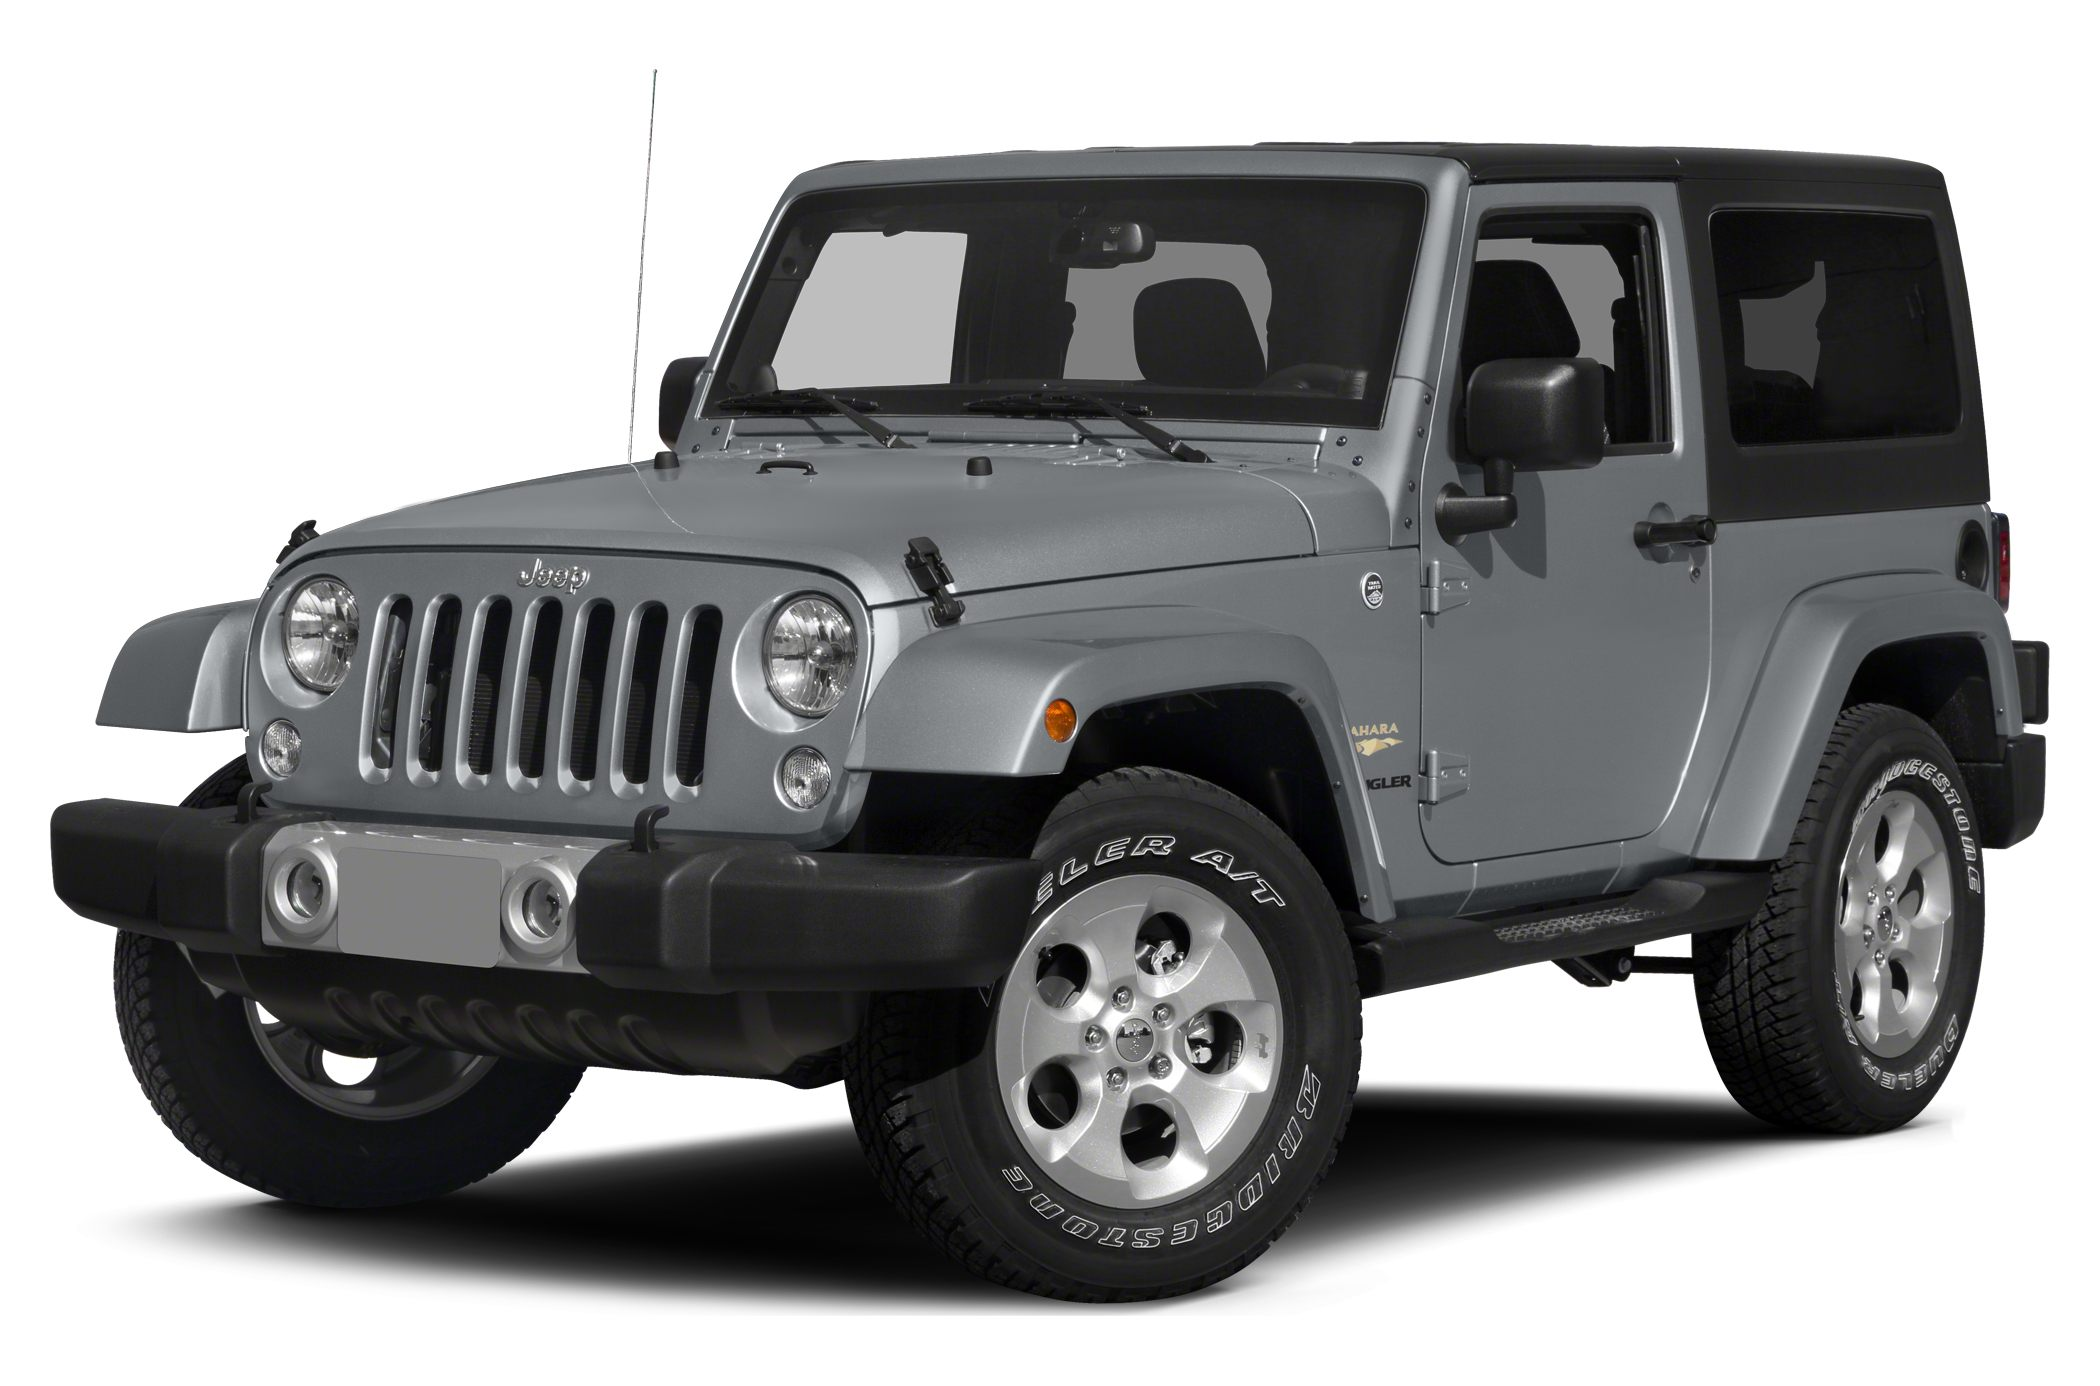 2015 Jeep Wrangler Sport SUV for sale in Kansas City for $34,425 with 0 miles.